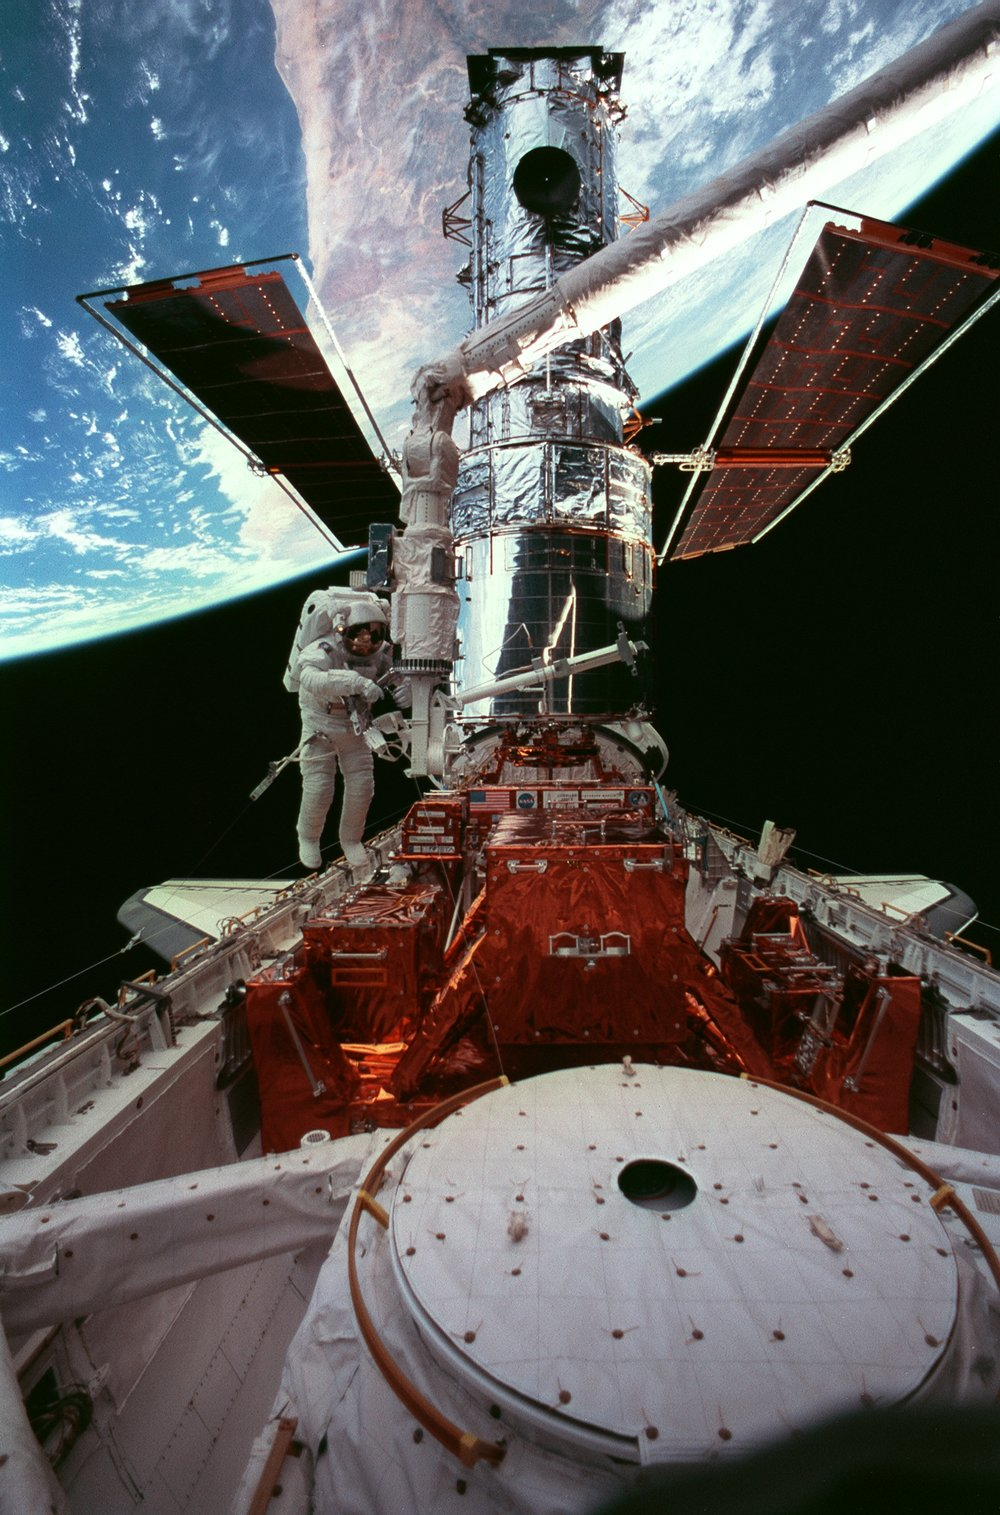 Spacewalk with Hubble and gorgeous Earth